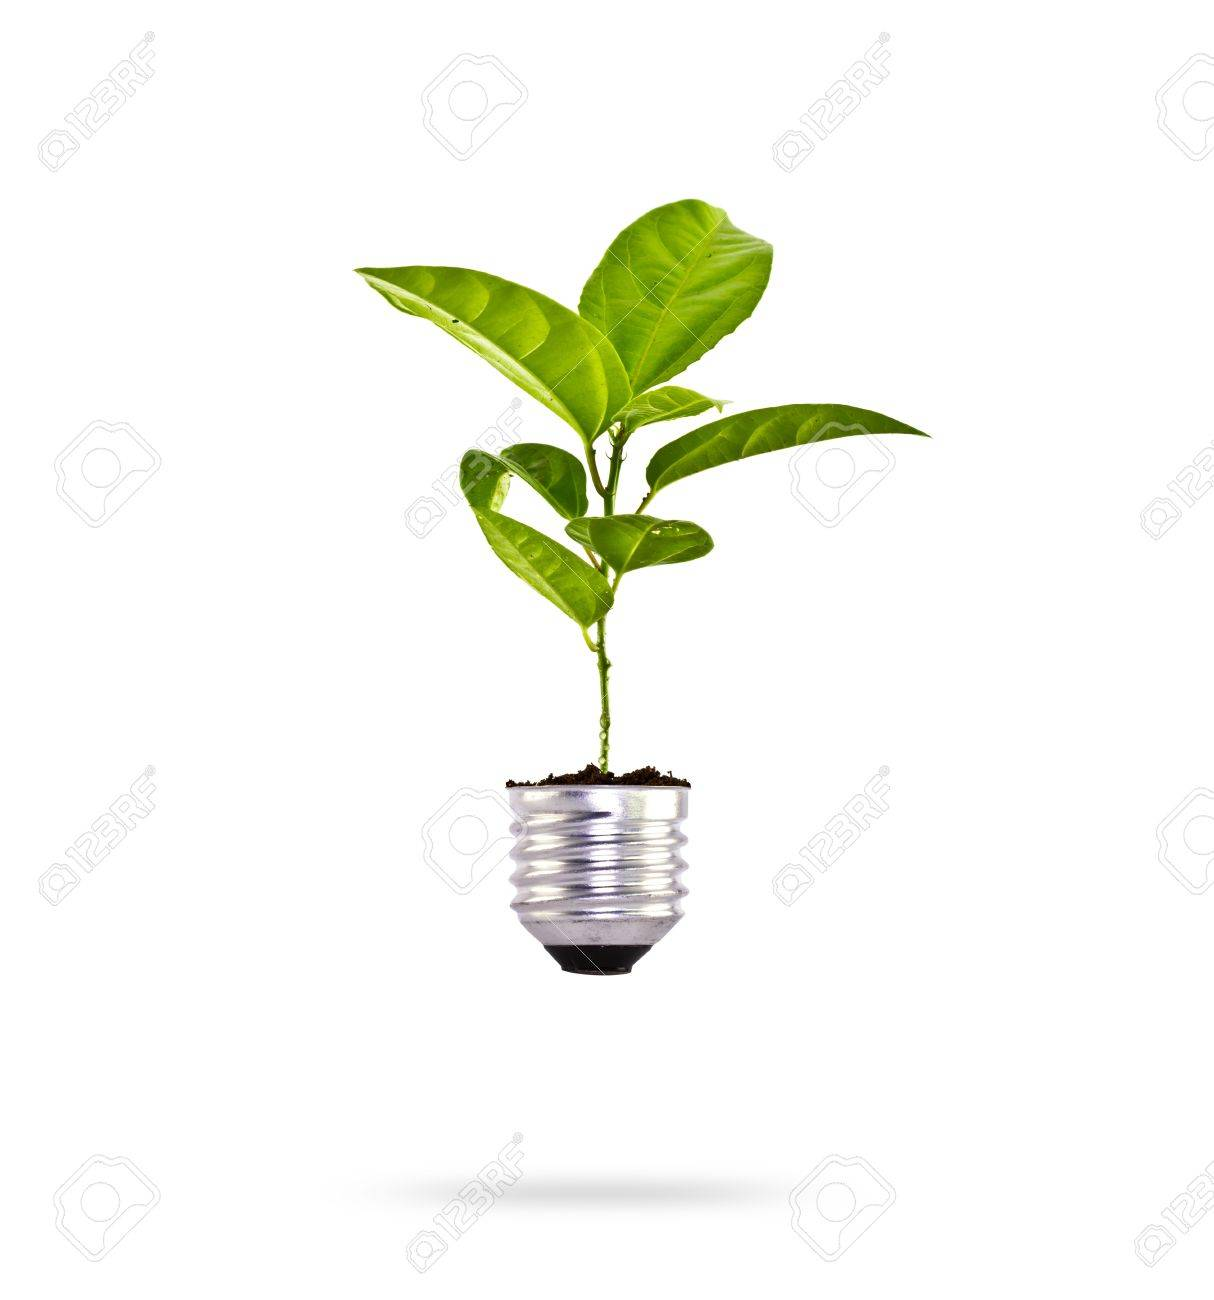 Eco concept: green tree growing out of a bulb. Stock Photo - 13626054